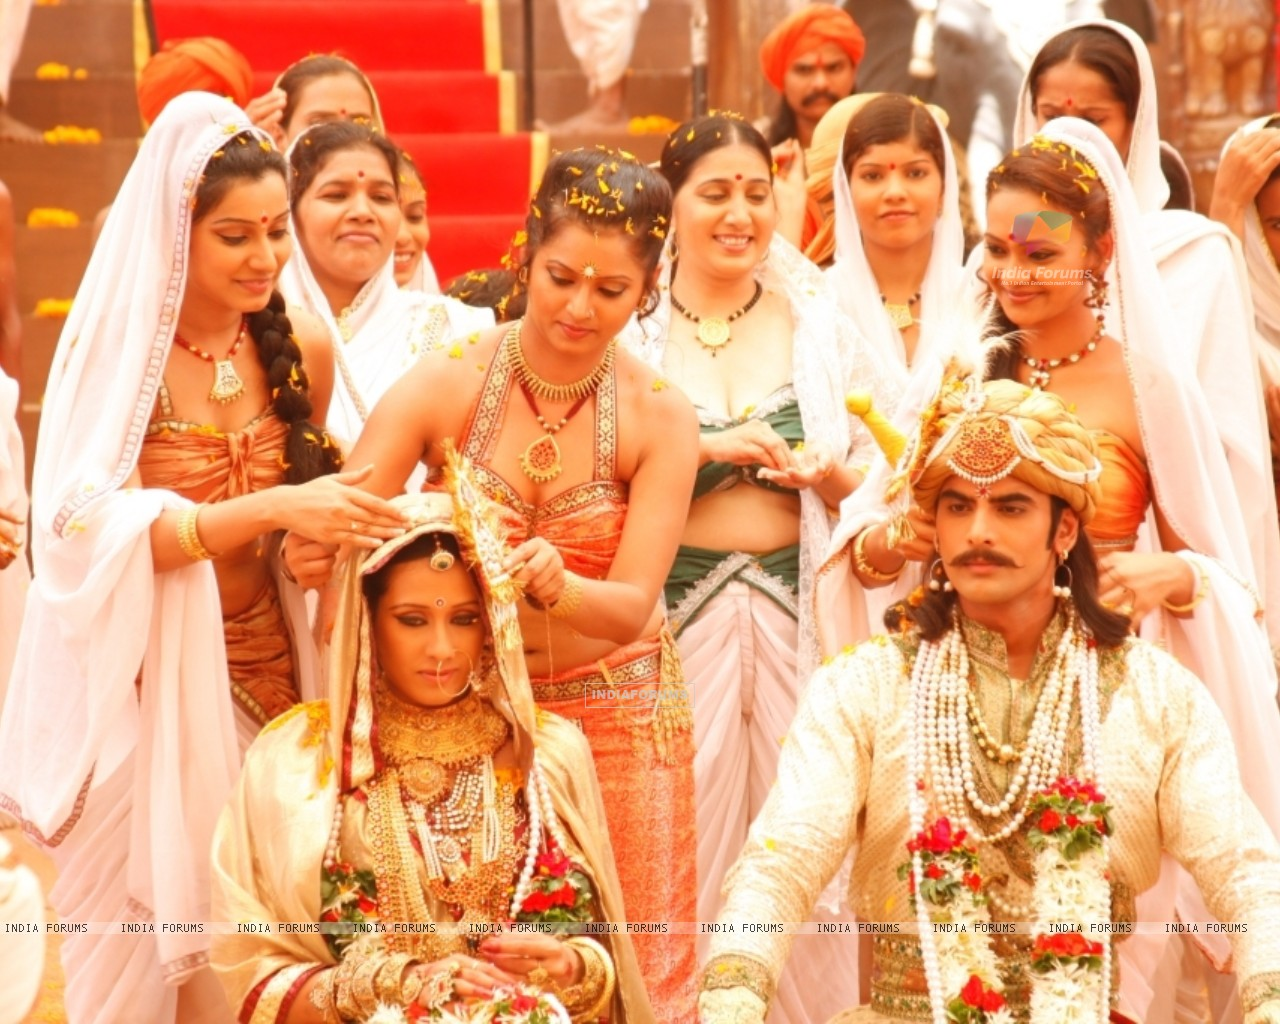 Rani Padmavati and Ratan Singh marriage (36803) size:1280x1024